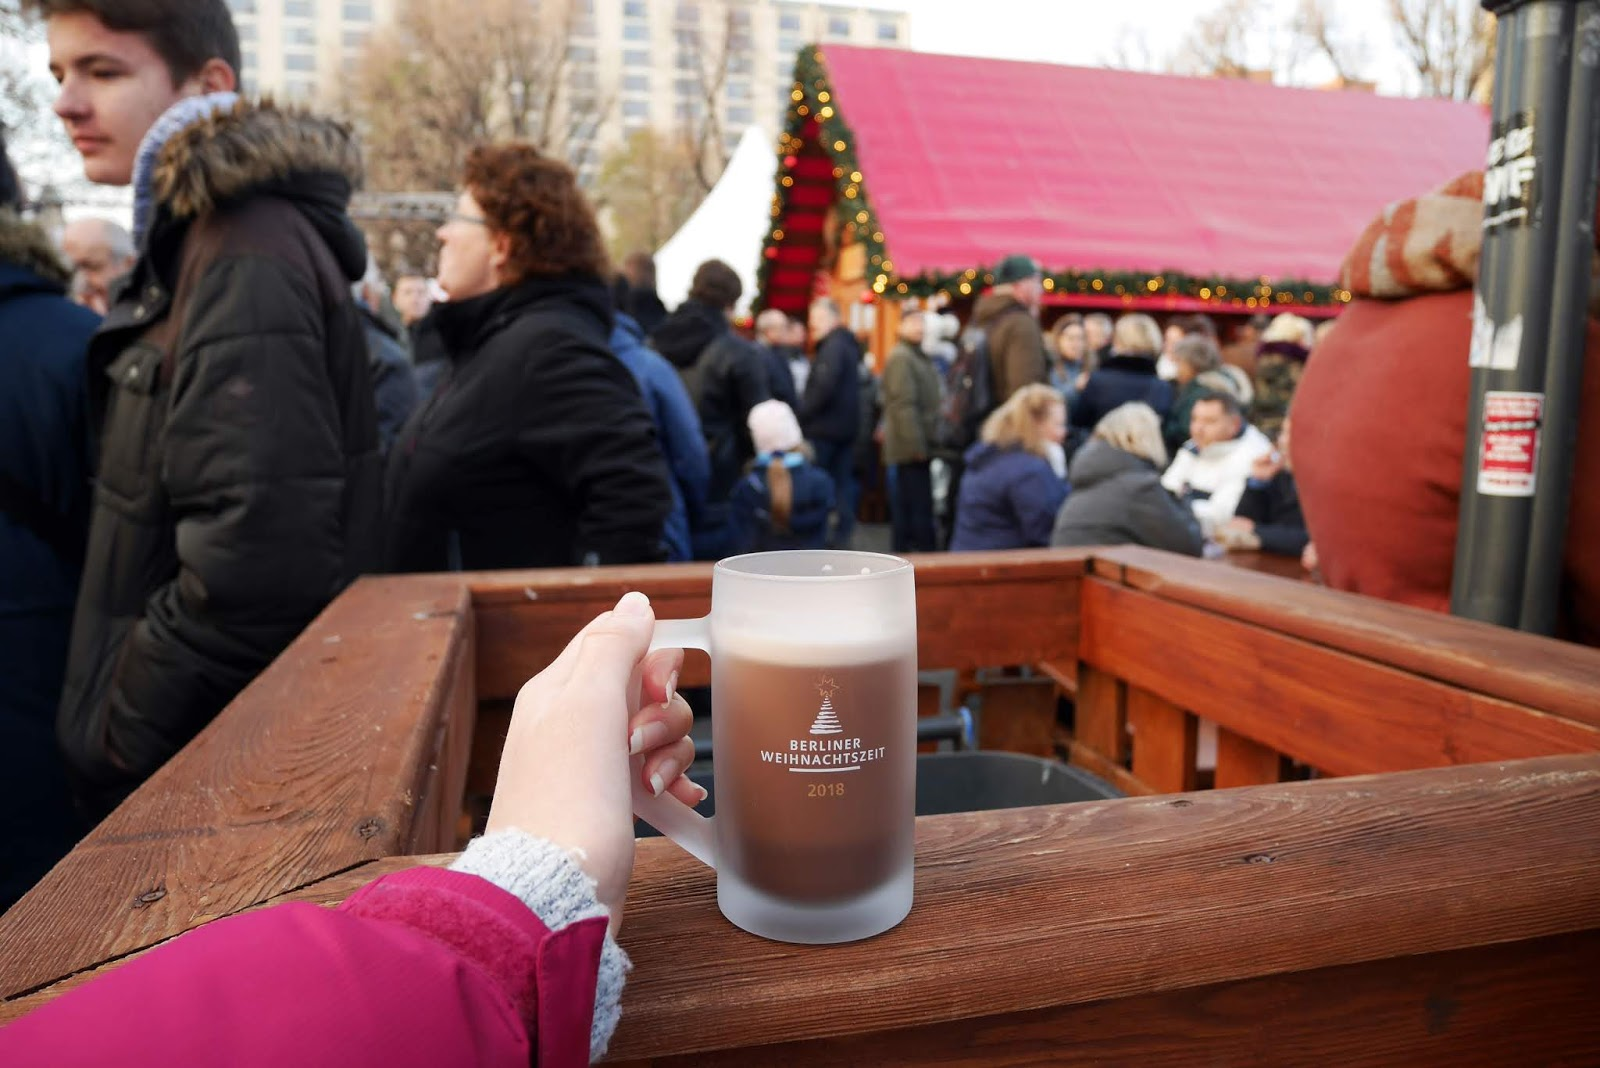 Hot Chocolate at the Alexanderplatz Christmas Market in Berlin